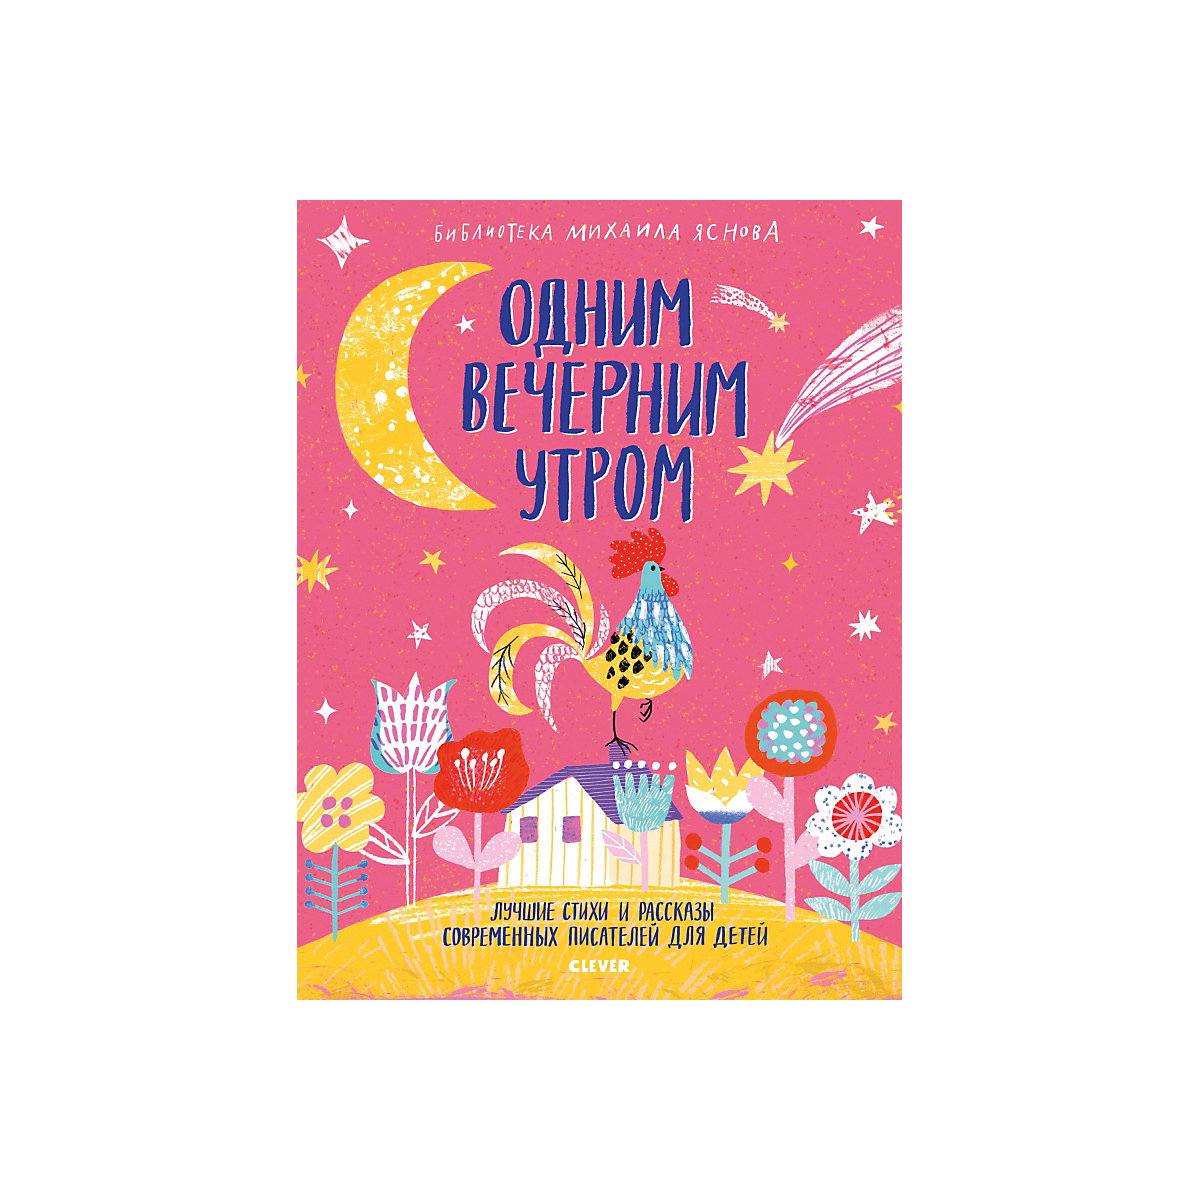 Books CLEVER 10078125 Children Education Encyclopedia Alphabet Dictionary Book For Baby